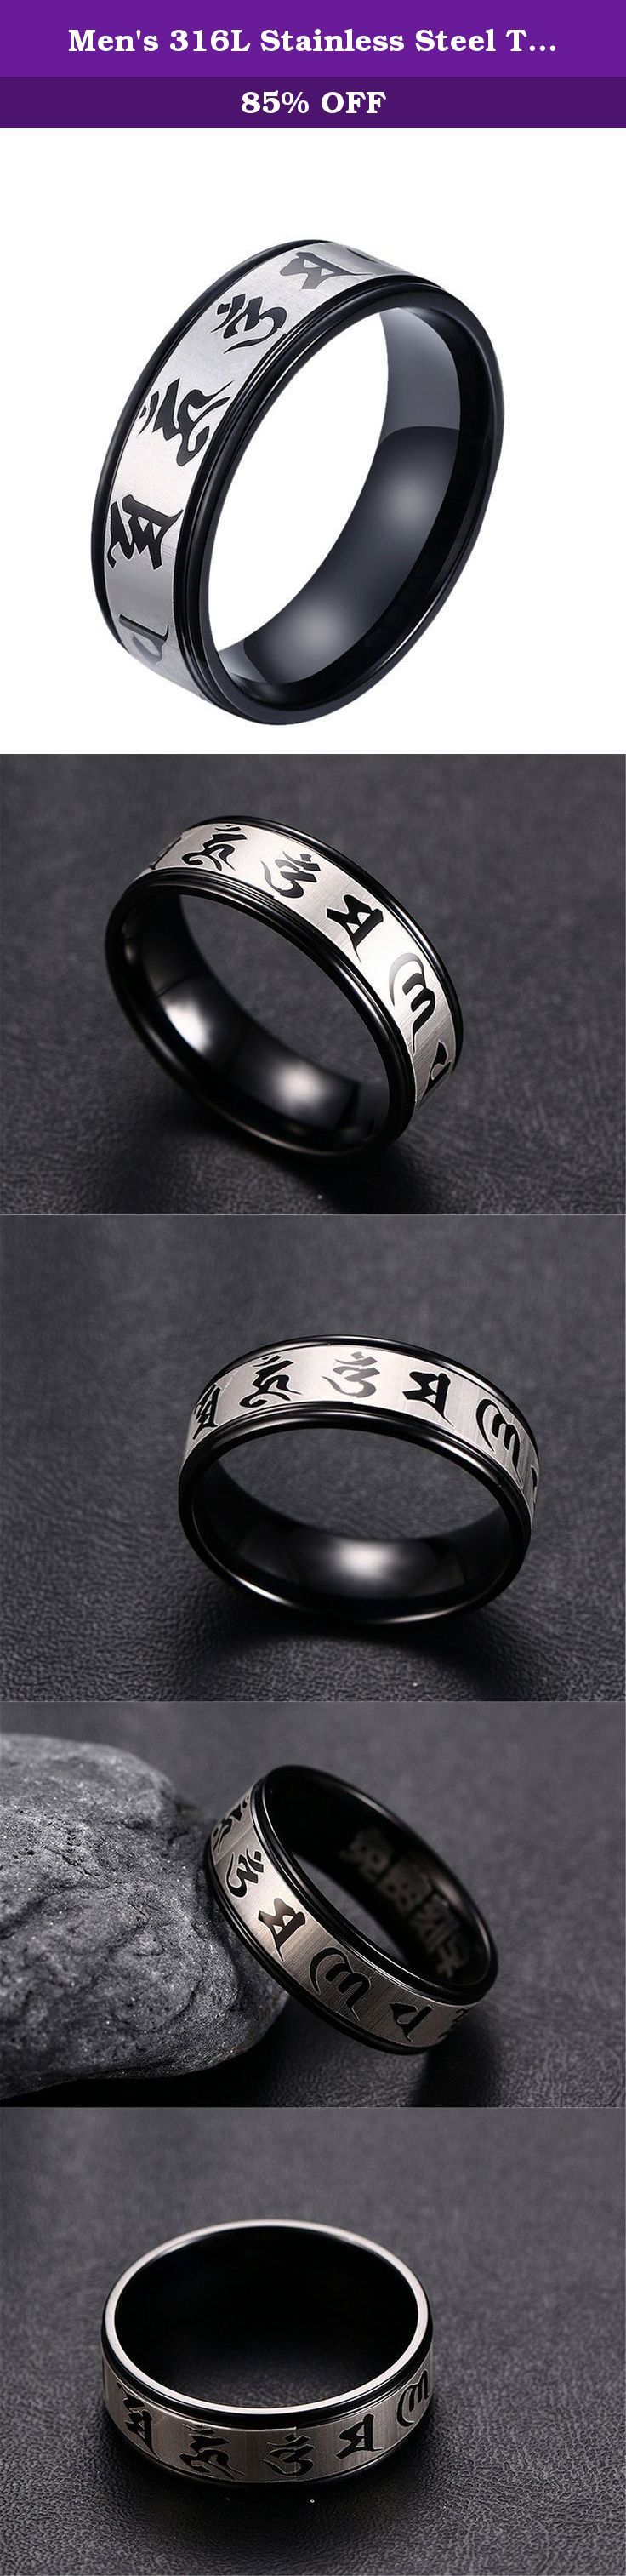 Men's 316L Stainless Steel Two Tone Chinese Characters Scripture Beveled Edge Band Ring 8mm(Pattern A(stainless-steel),8). Men's 316L Stainless Steel Two Tone Chinese Characters Scripture Beveled Edge Band Ring 8mm How to know your size: Step 1: Cut a strip of paper long enough to fit around your finger. Step 2: Wrap the paper somewhat tightly around your finger at the knuckle and mark where the two ends meet. Step 3: Measure the length of the paper from the end to your pencil mark. Warm...